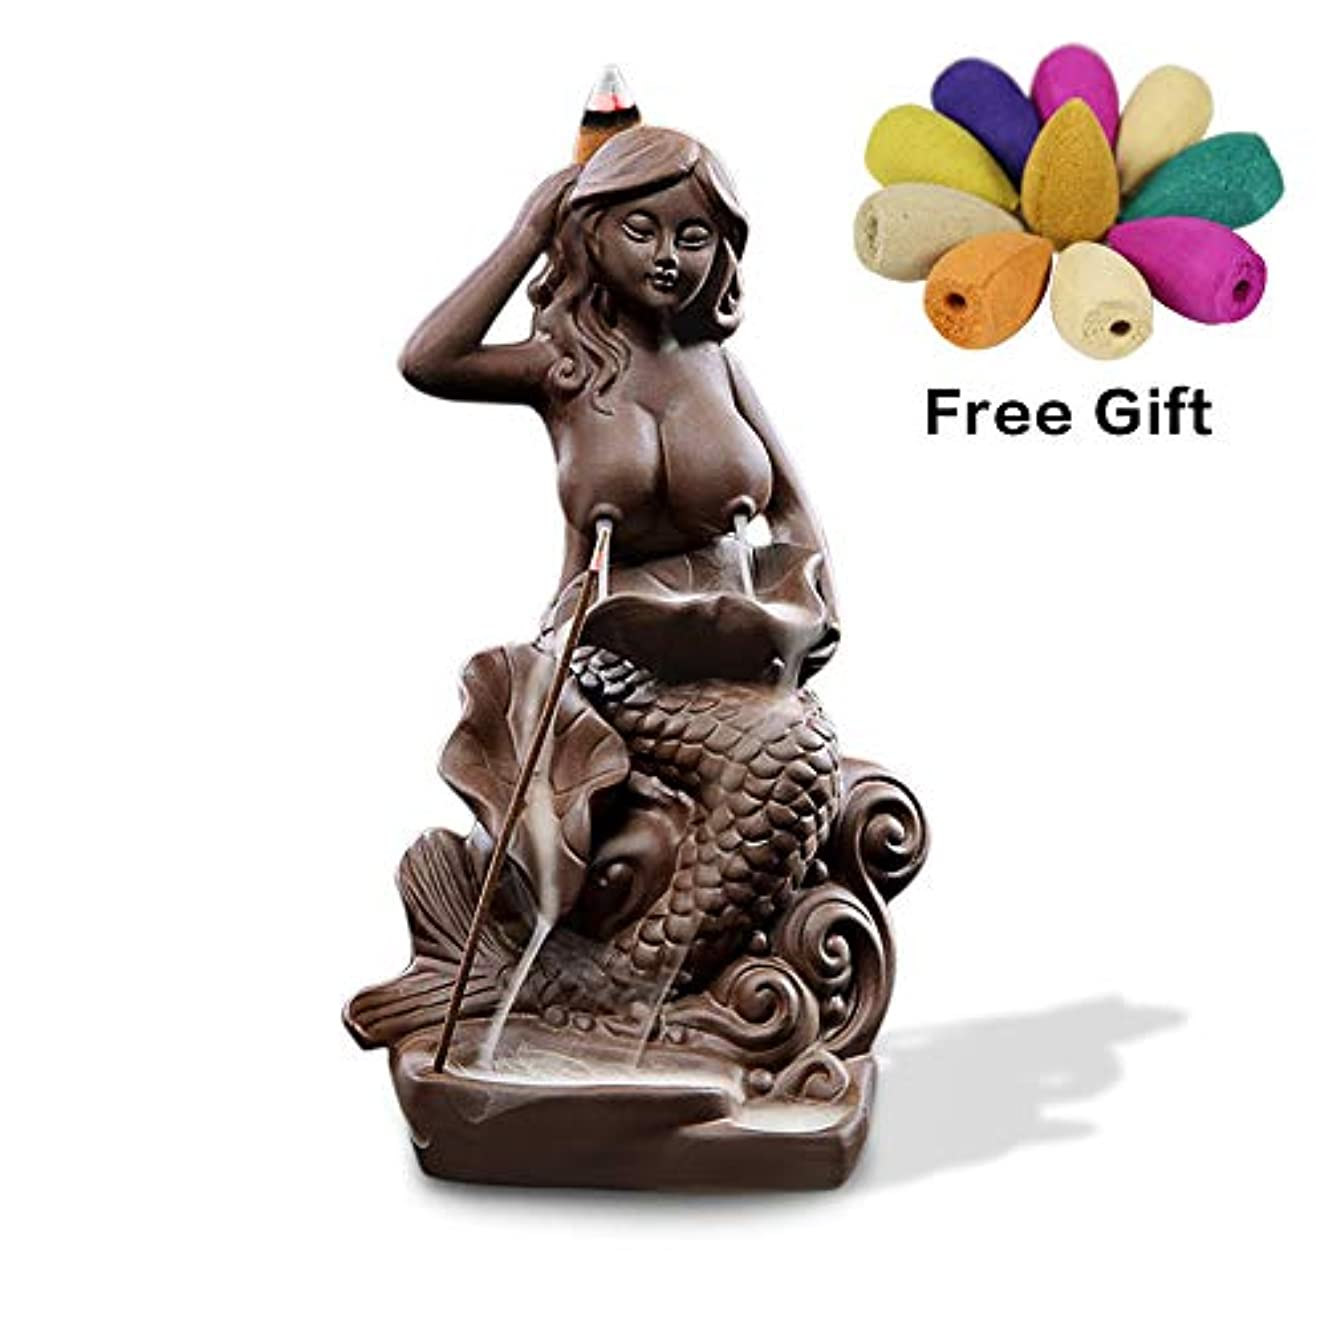 (Style9) - OTOFY Mermaid Ceramic Incense Holder Backflow Incense Burner with 10 Incense Cones Artwork Home Decor...